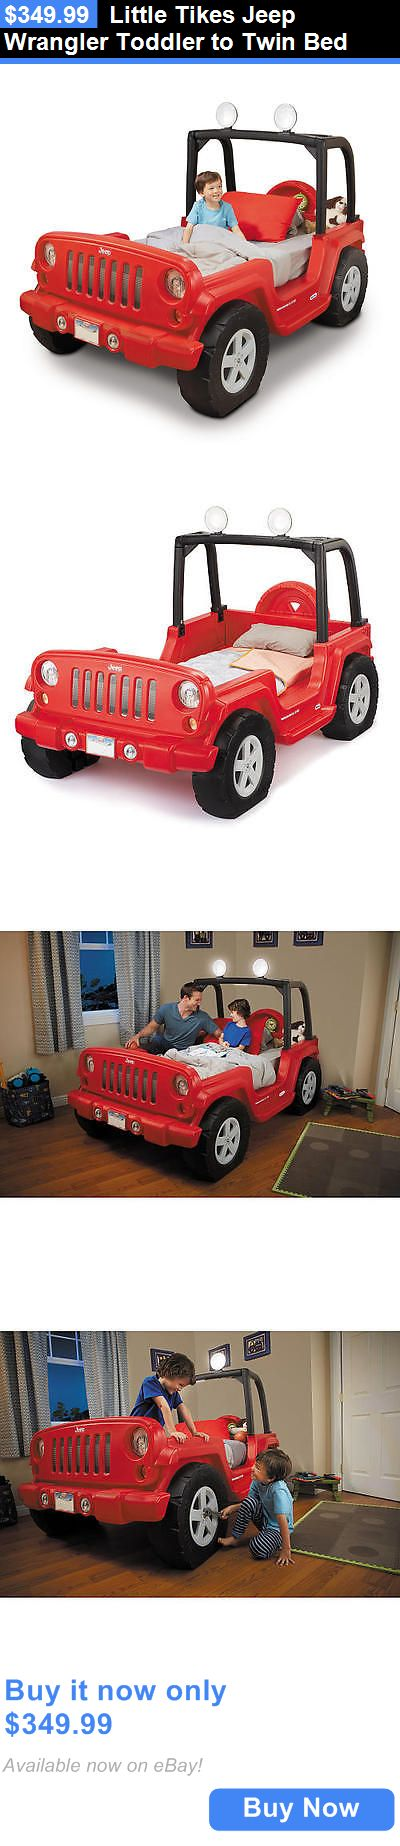 Kids Furniture: Little Tikes Jeep Wrangler Toddler To Twin Bed BUY IT NOW ONLY: $349.99